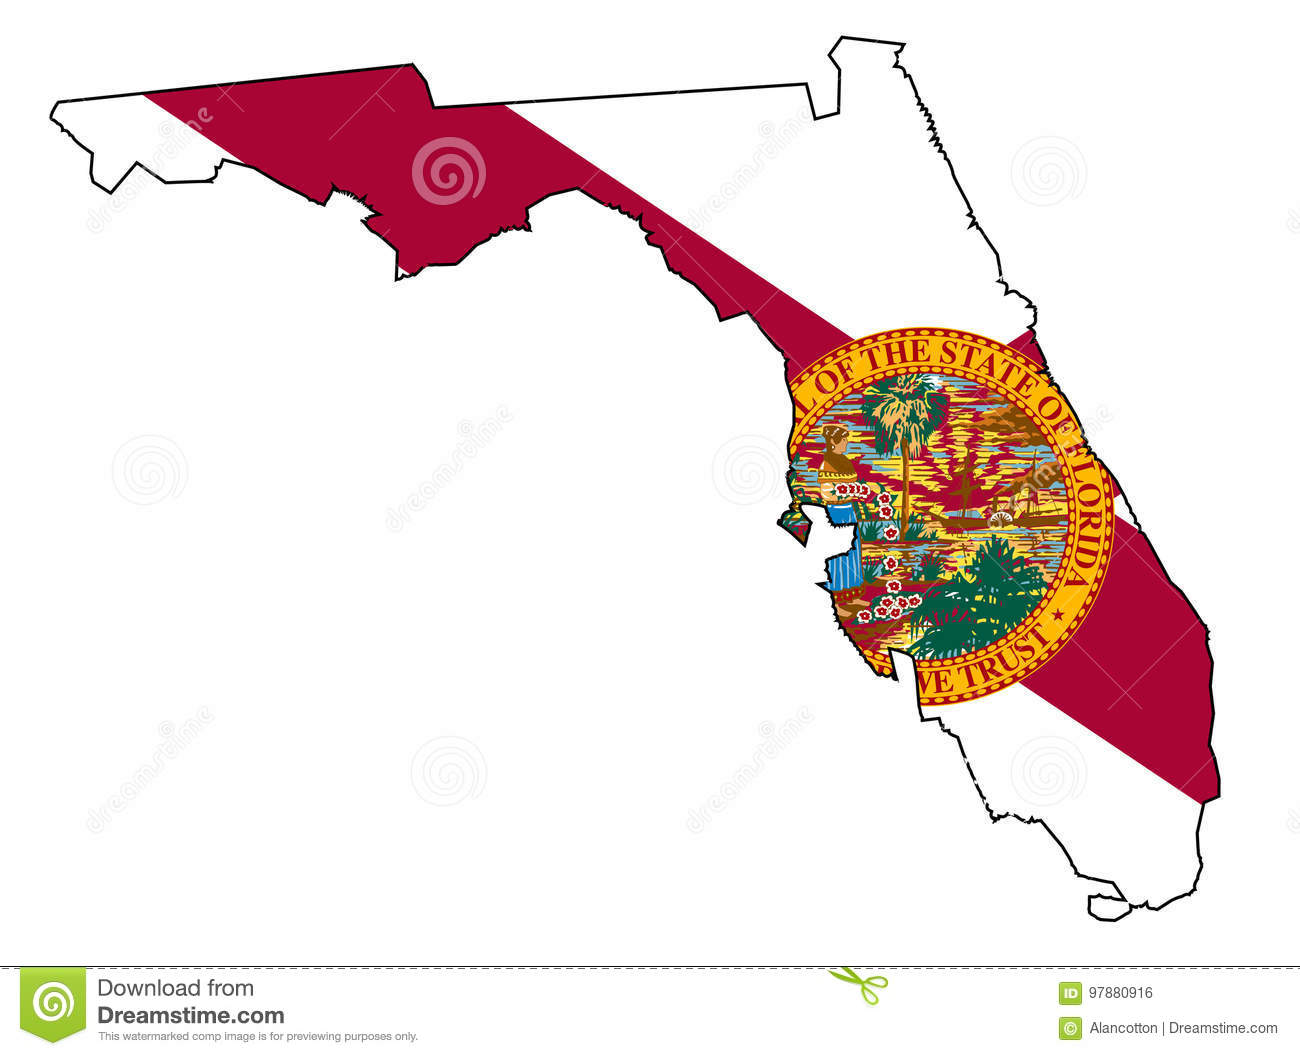 Florida Map Of State.Florida State Outline Map And Flag Stock Vector Illustration Of